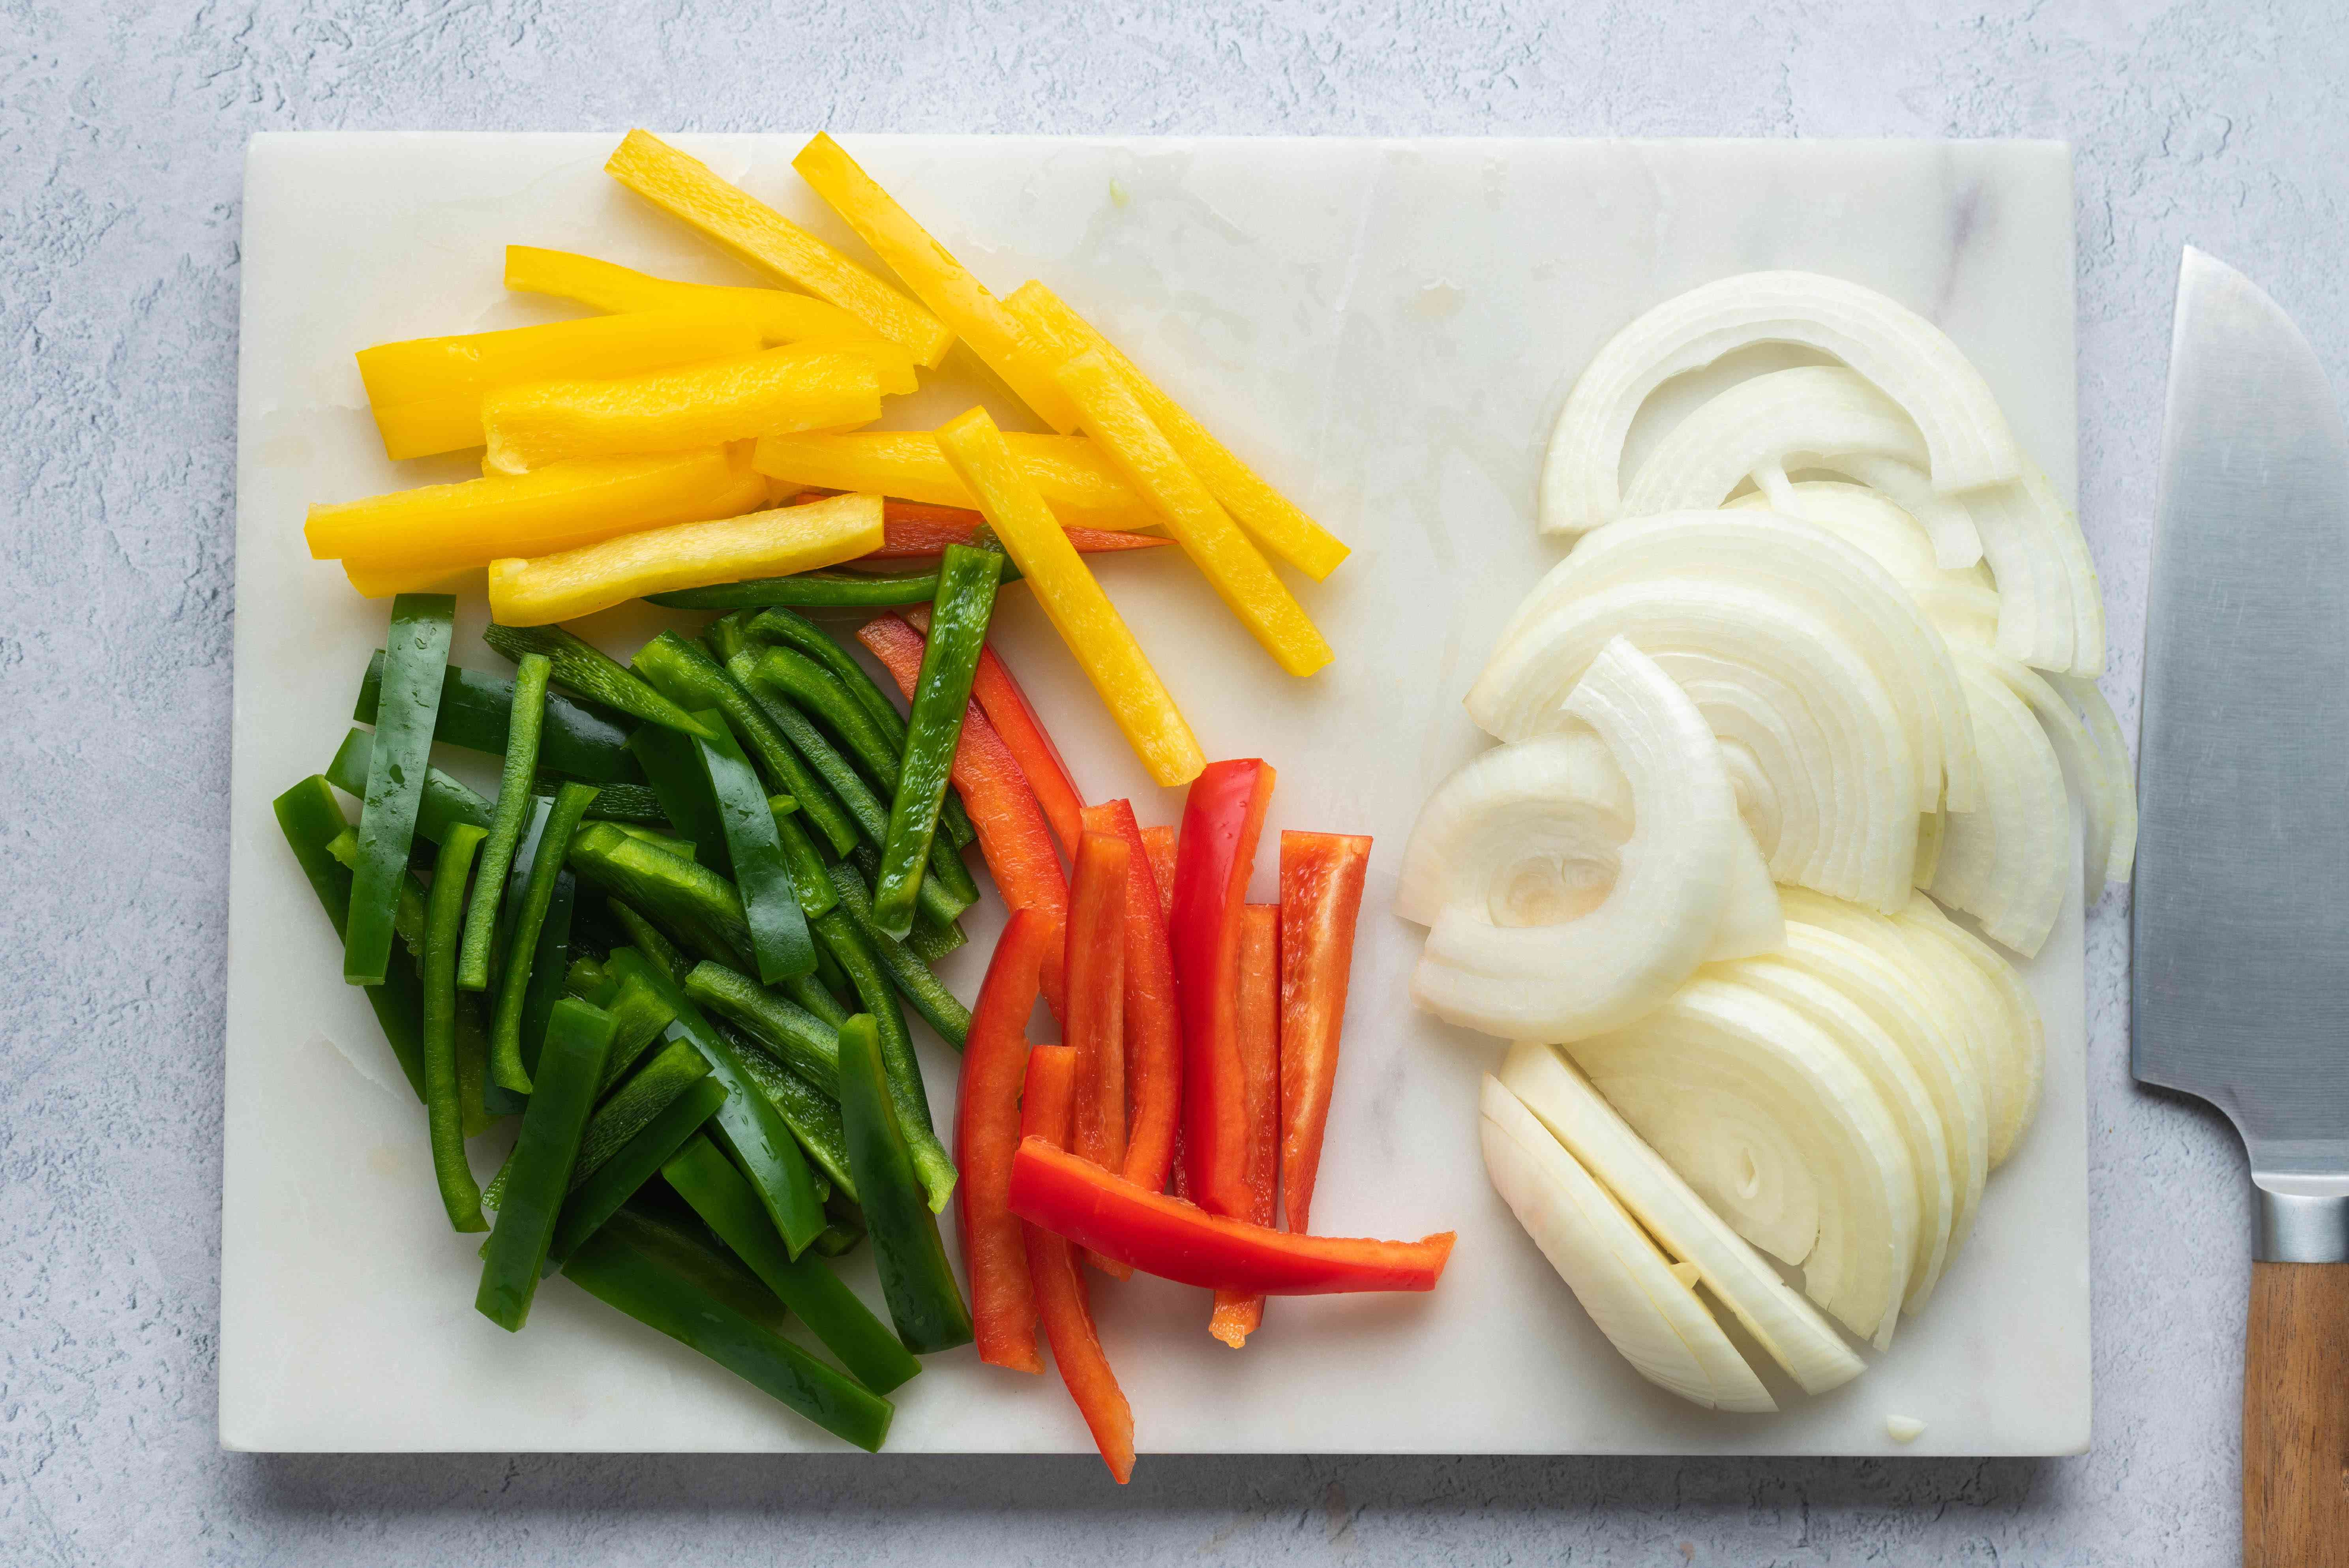 Peppers and onions cut into pieces